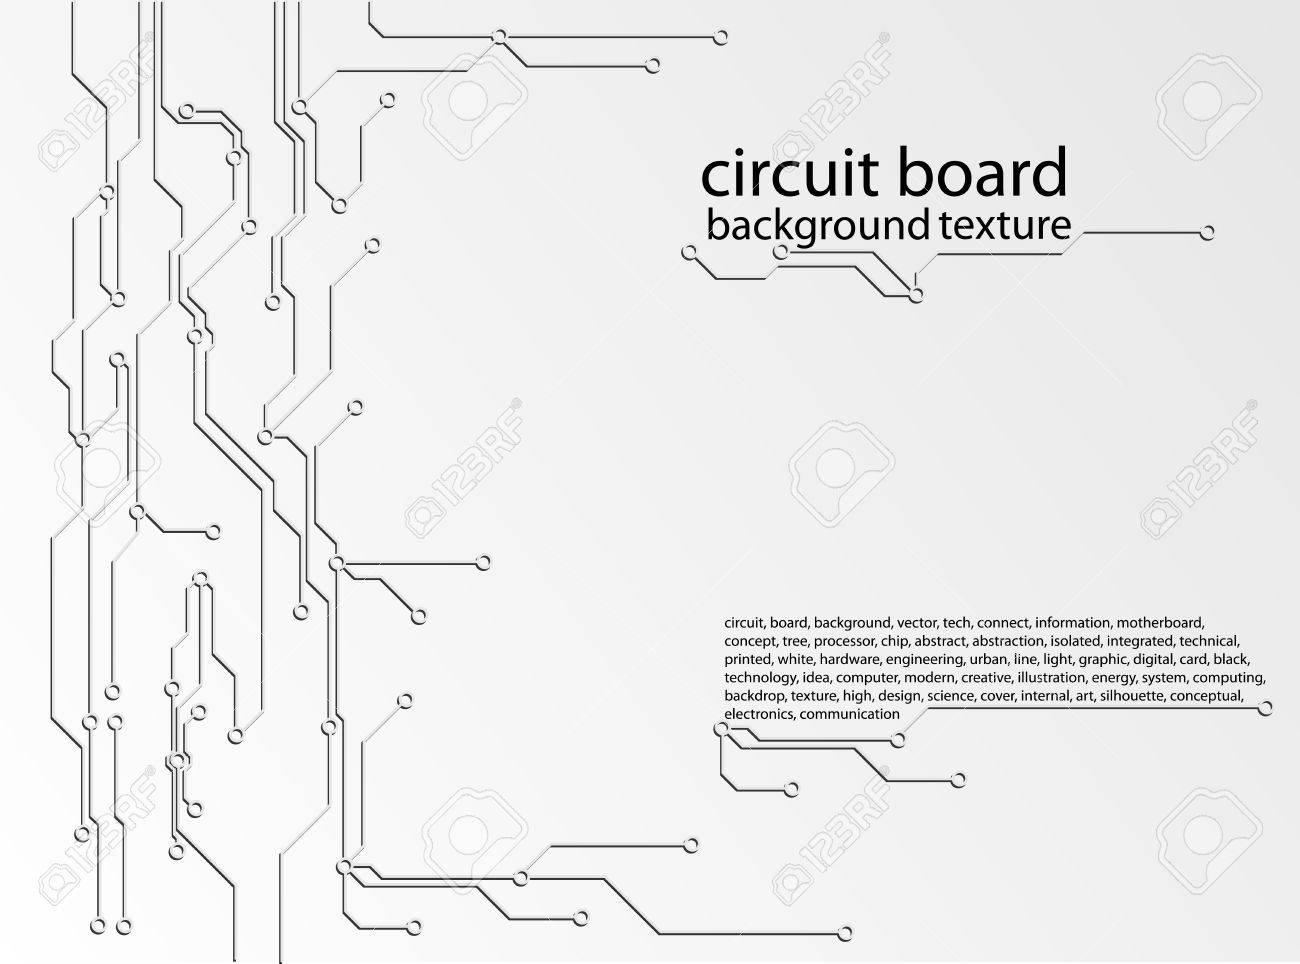 Abstract Circuit Board Background Texture Royalty Free Cliparts Stock Image Of Printed Sciencestockphotoscom Vector 26530317